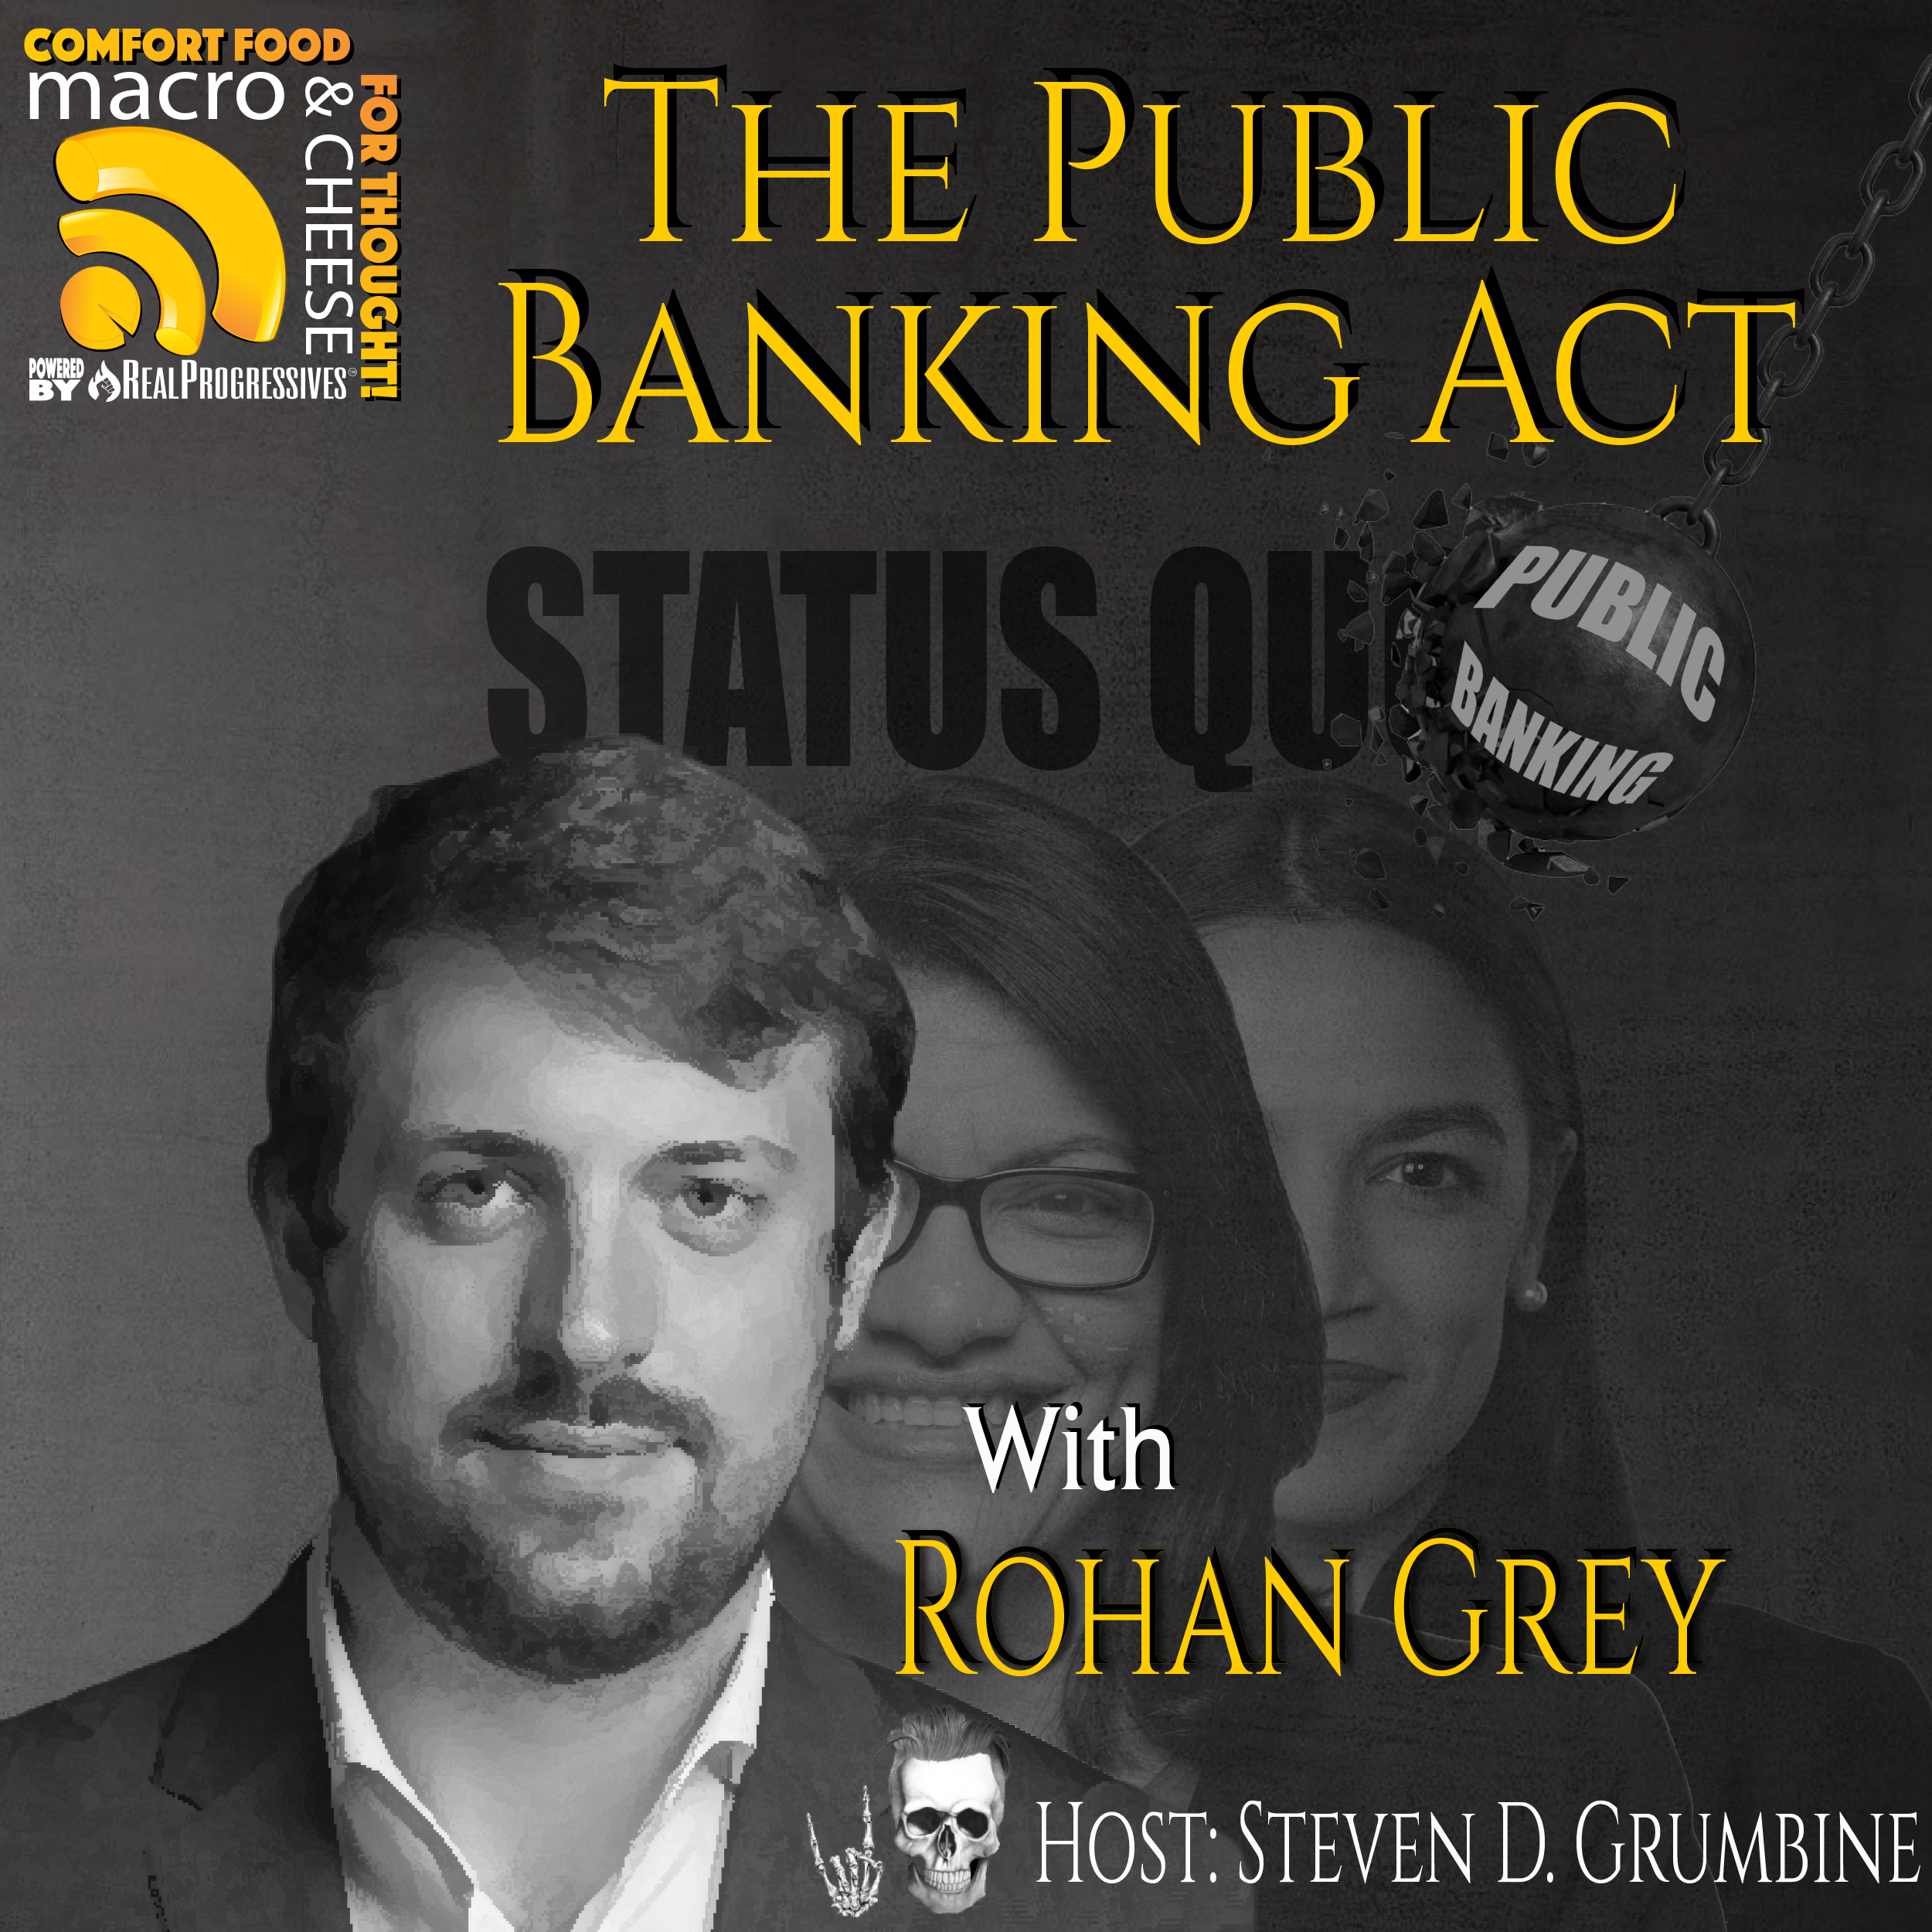 The Public Banking Act with Rohan Grey